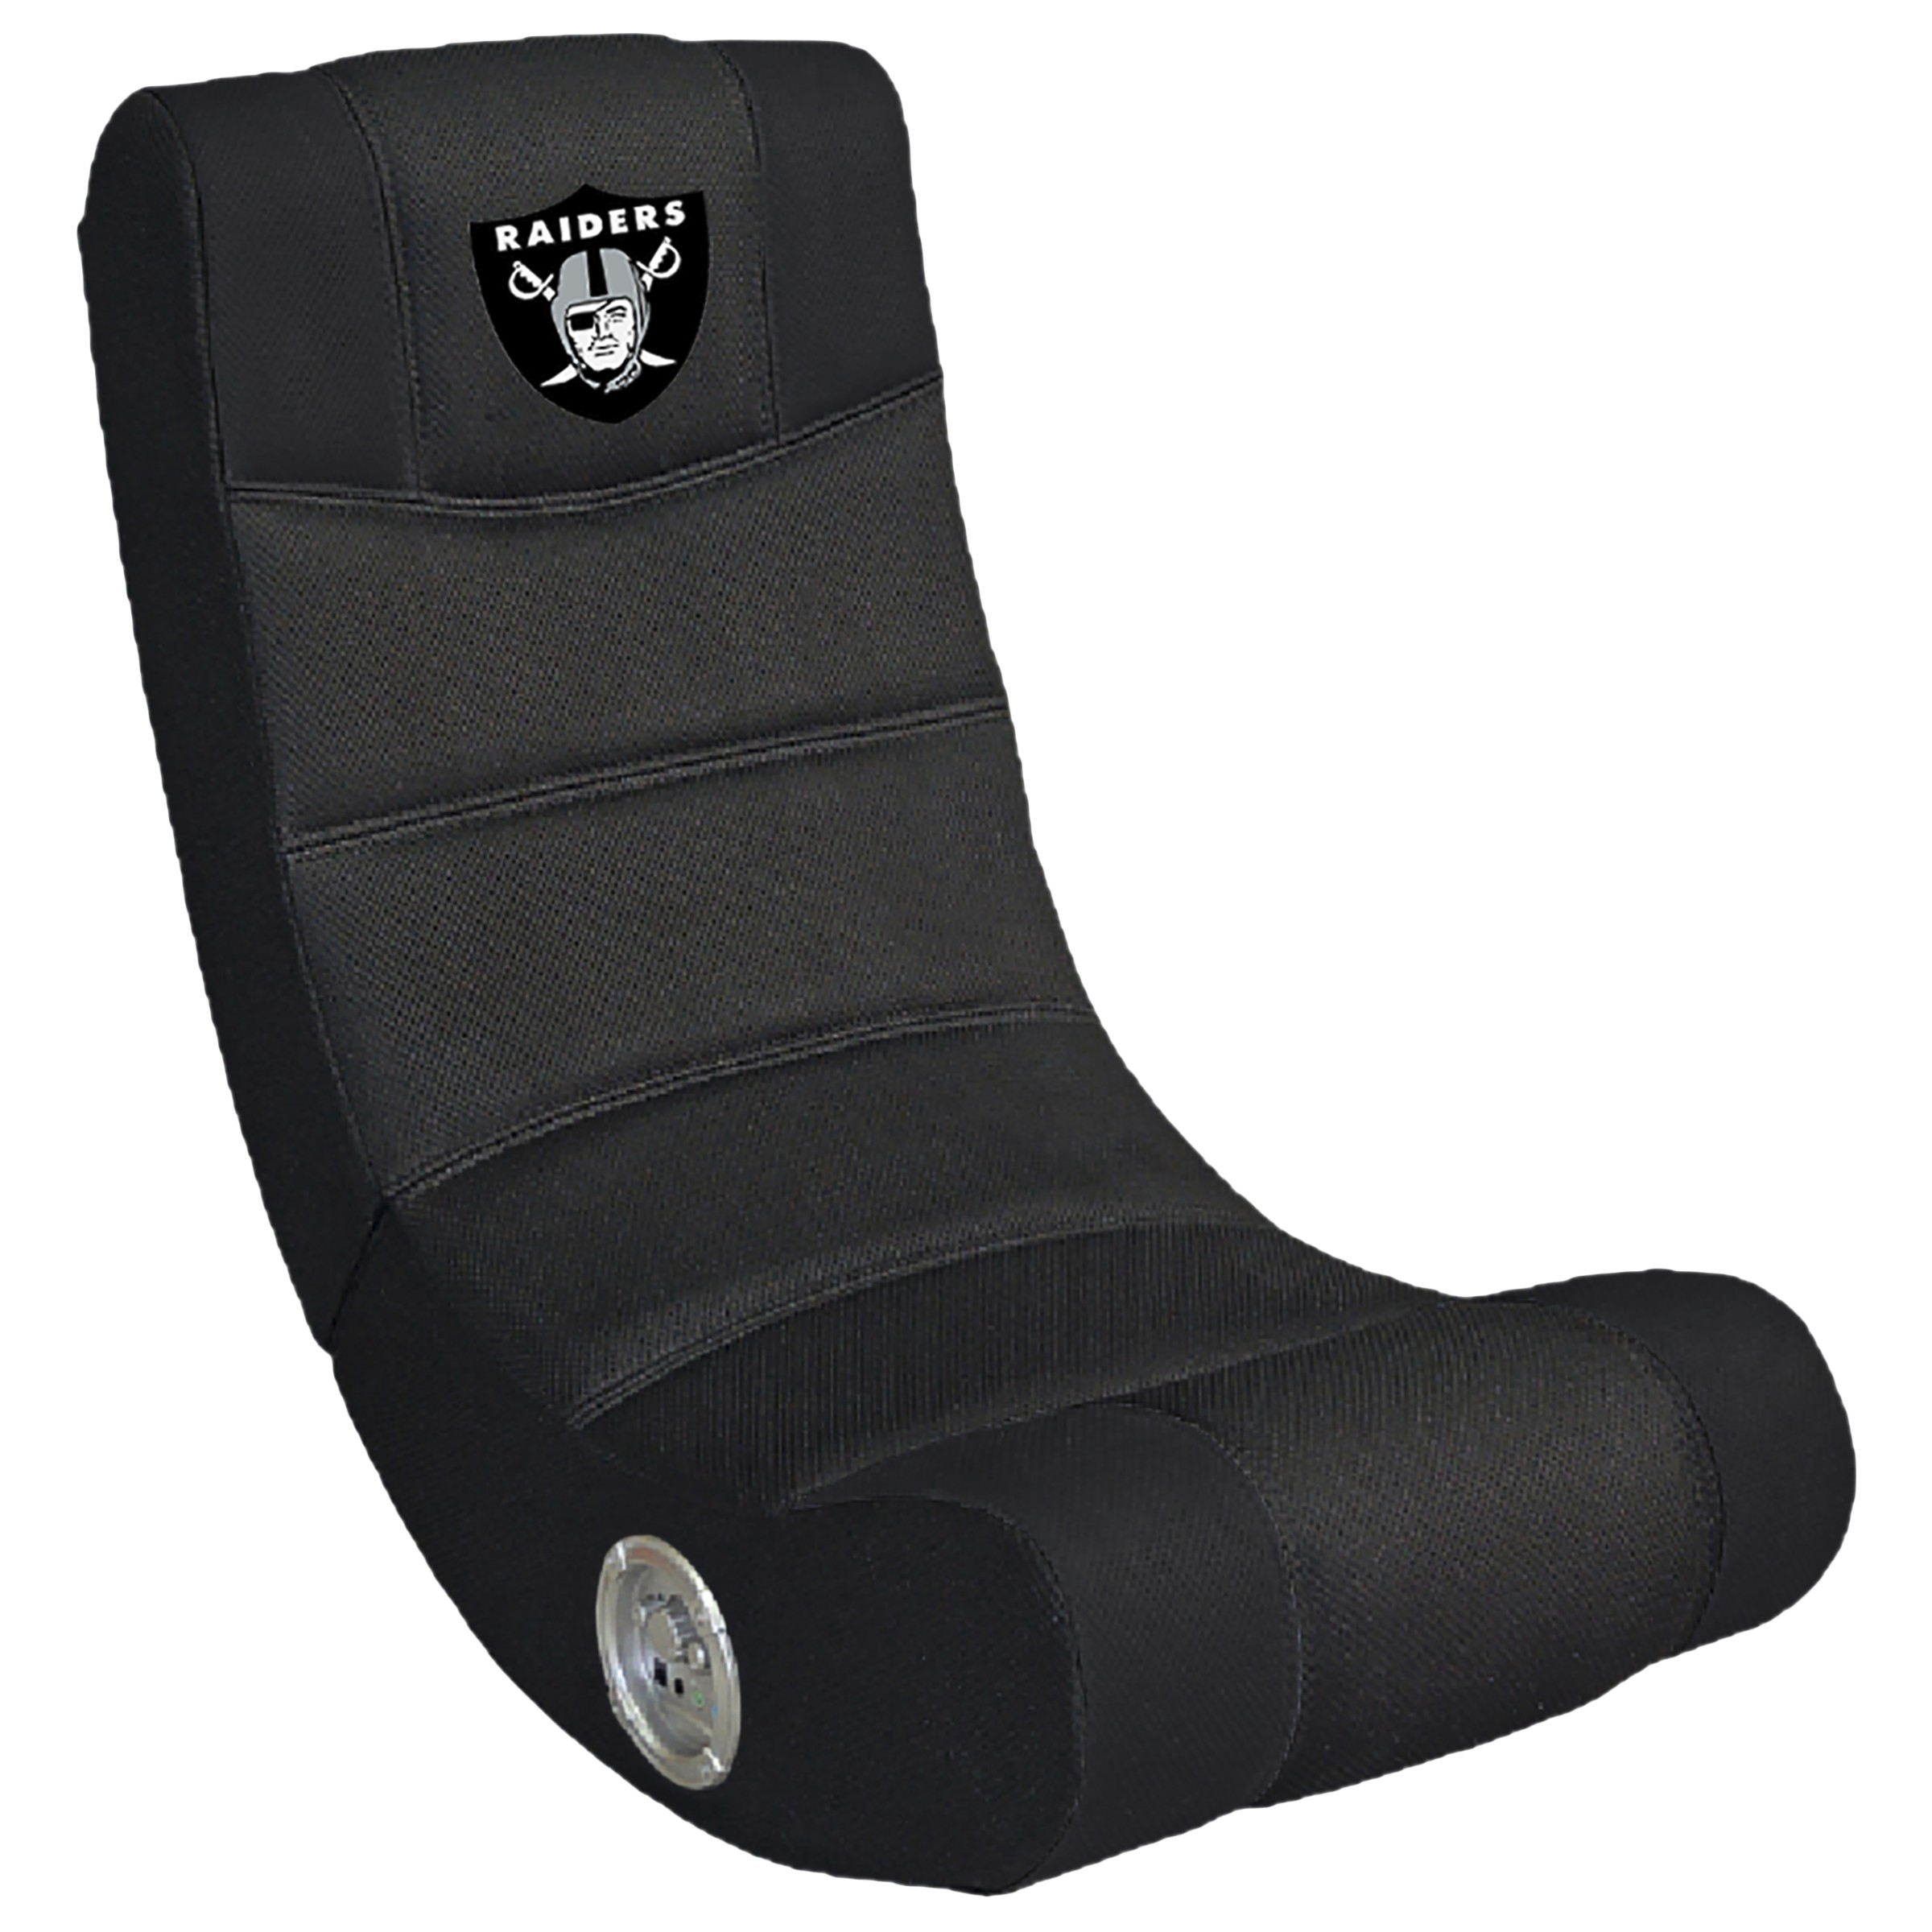 oakland raiders chair cushions for rocking chairs nursery nfl licensed bluetooth video pool tables r us